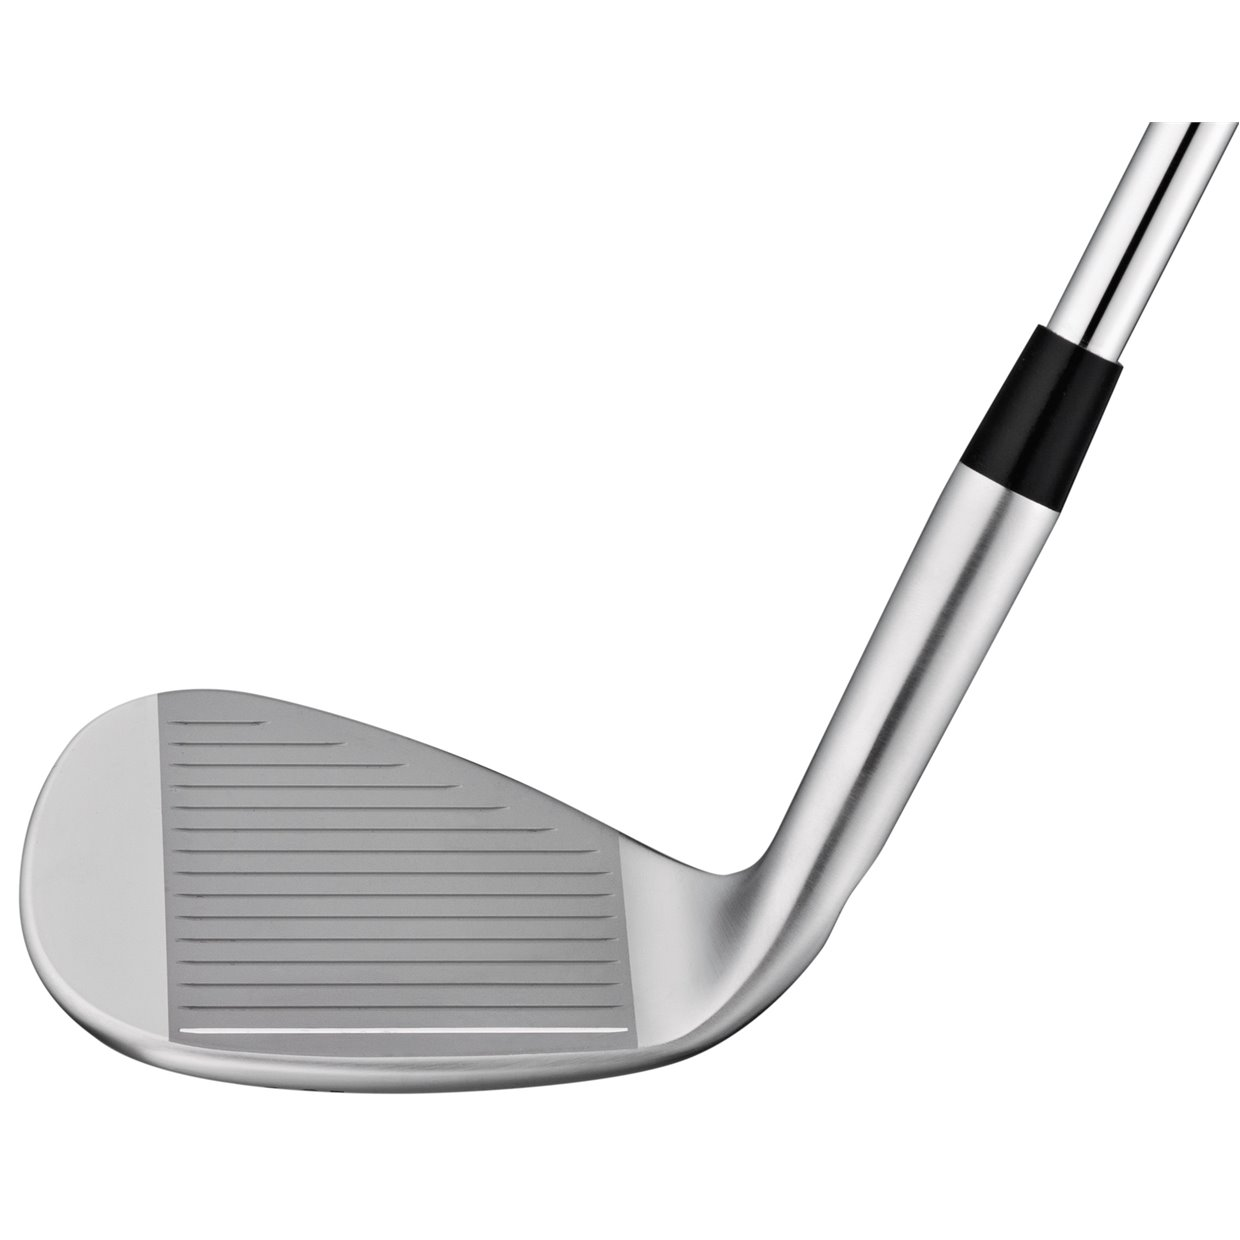 Ping Glide Ws Wedge Sand Wedge 54 Degree Used Golf Club At